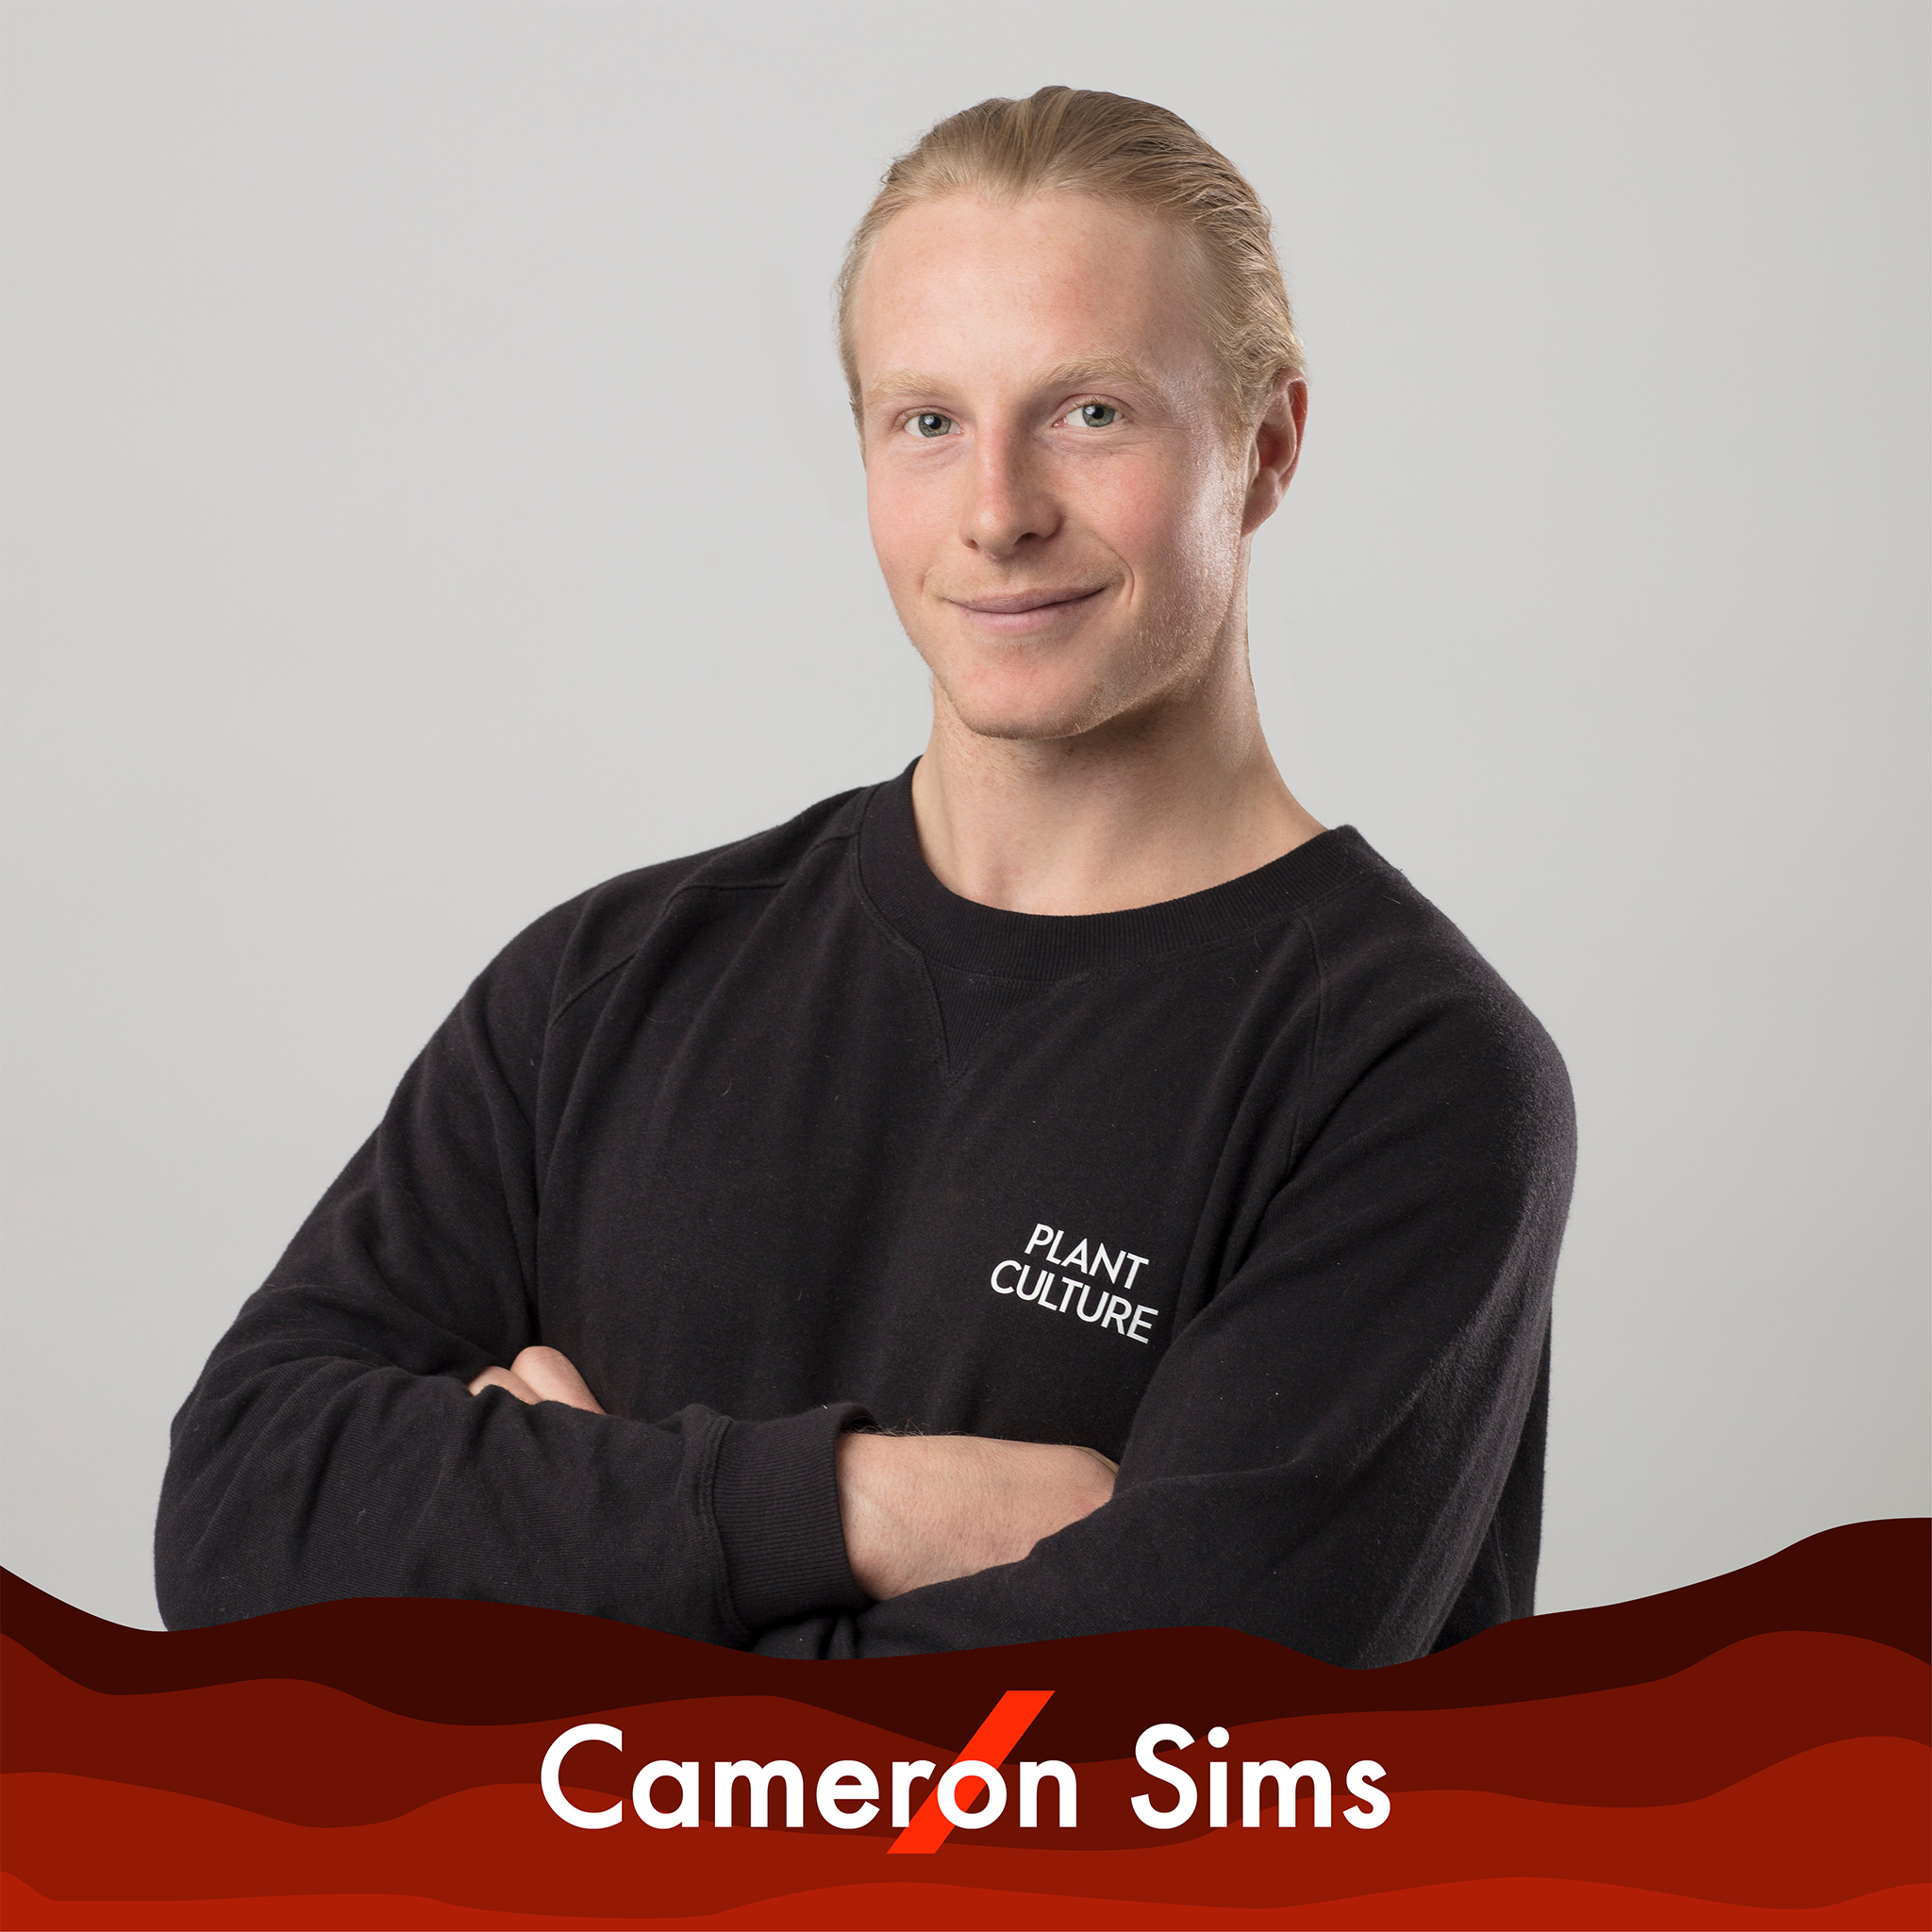 A picture of Cameron Sims